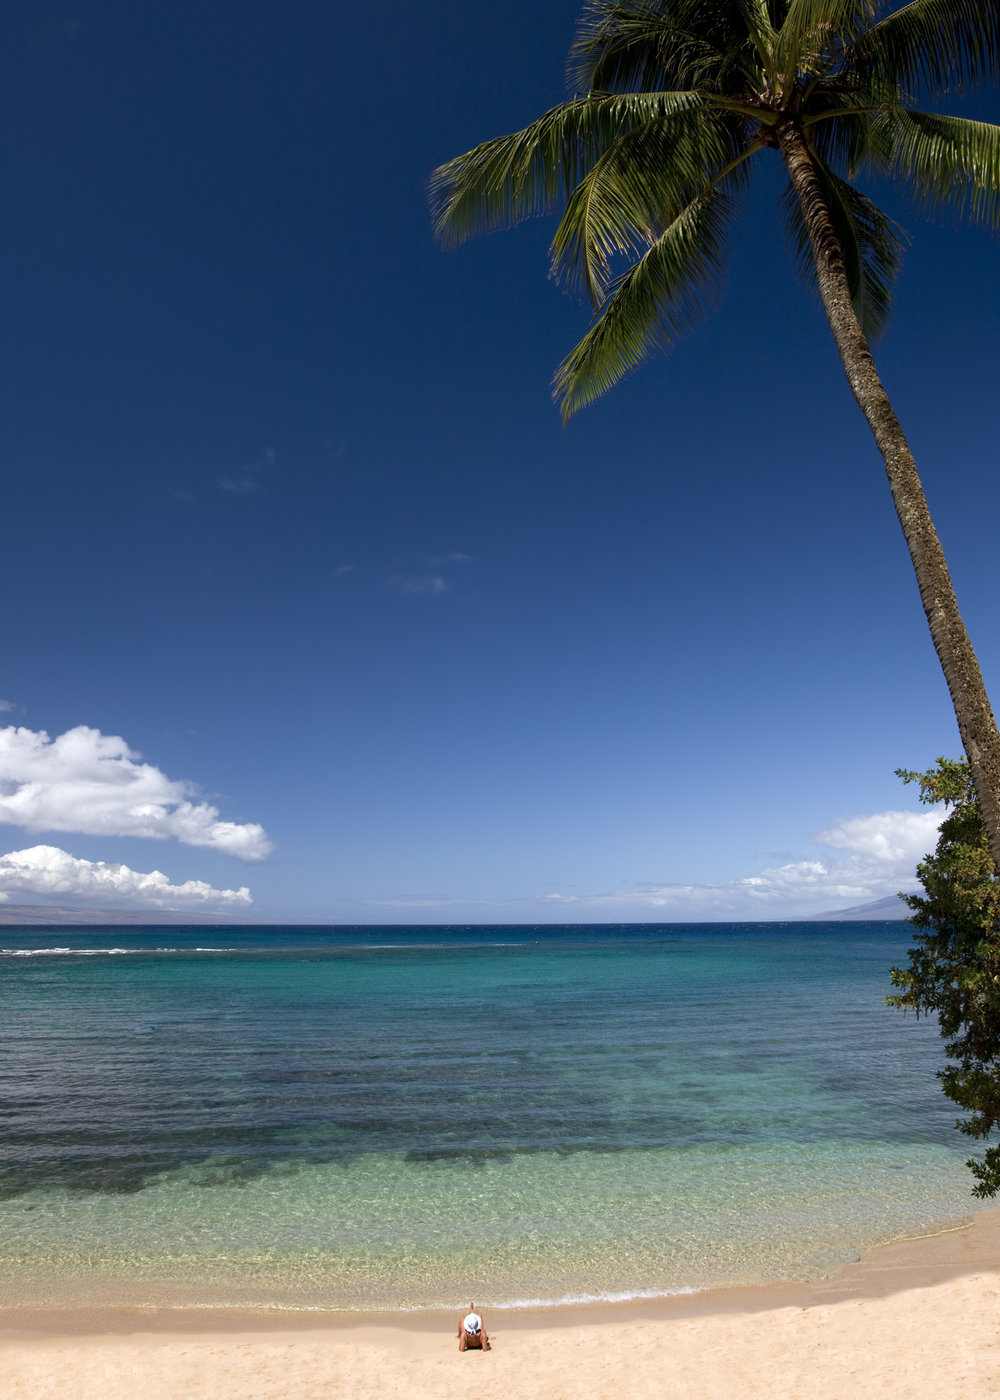 Paradise Awaits - Please contact us for more info on Maui Accommodations...